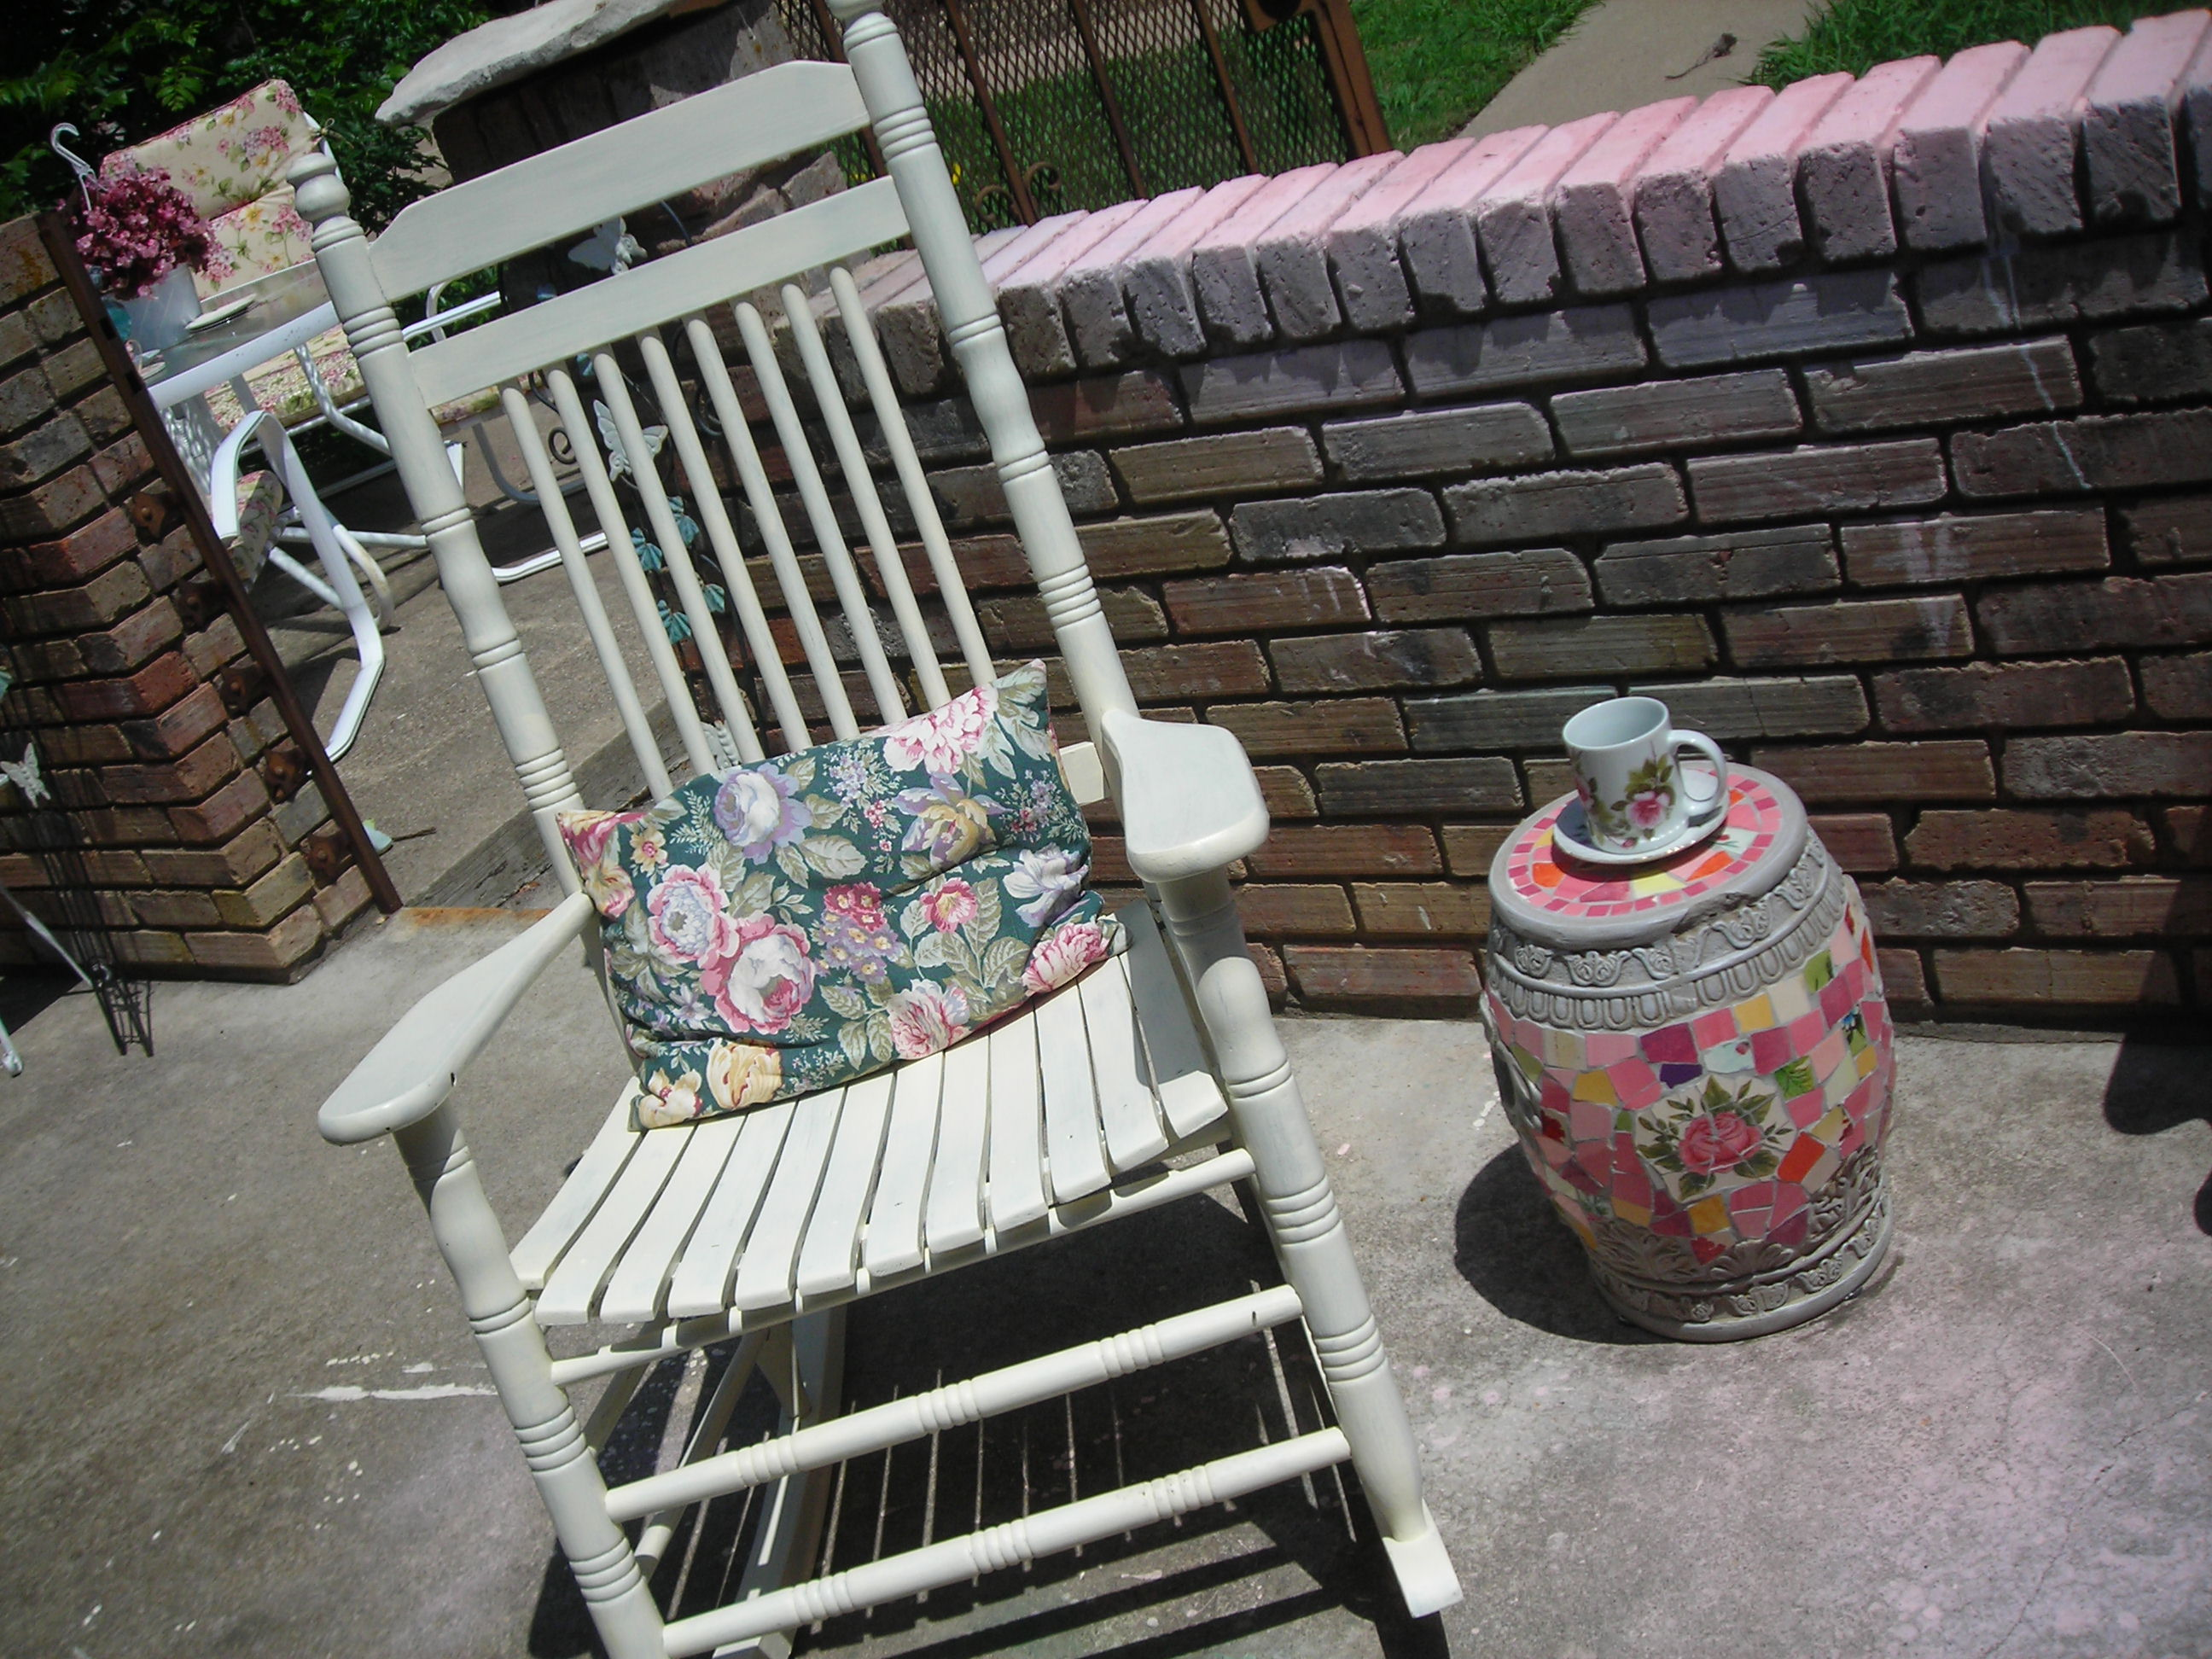 this is an old cracker barrel rocker that i found a few years back at an antique mall. painted it antique white and had been using it inside. i think it looks great on my patio. the mosaic piece next to it was marked way down at 'tuesday morning' because of a small chipped area. lucky me!